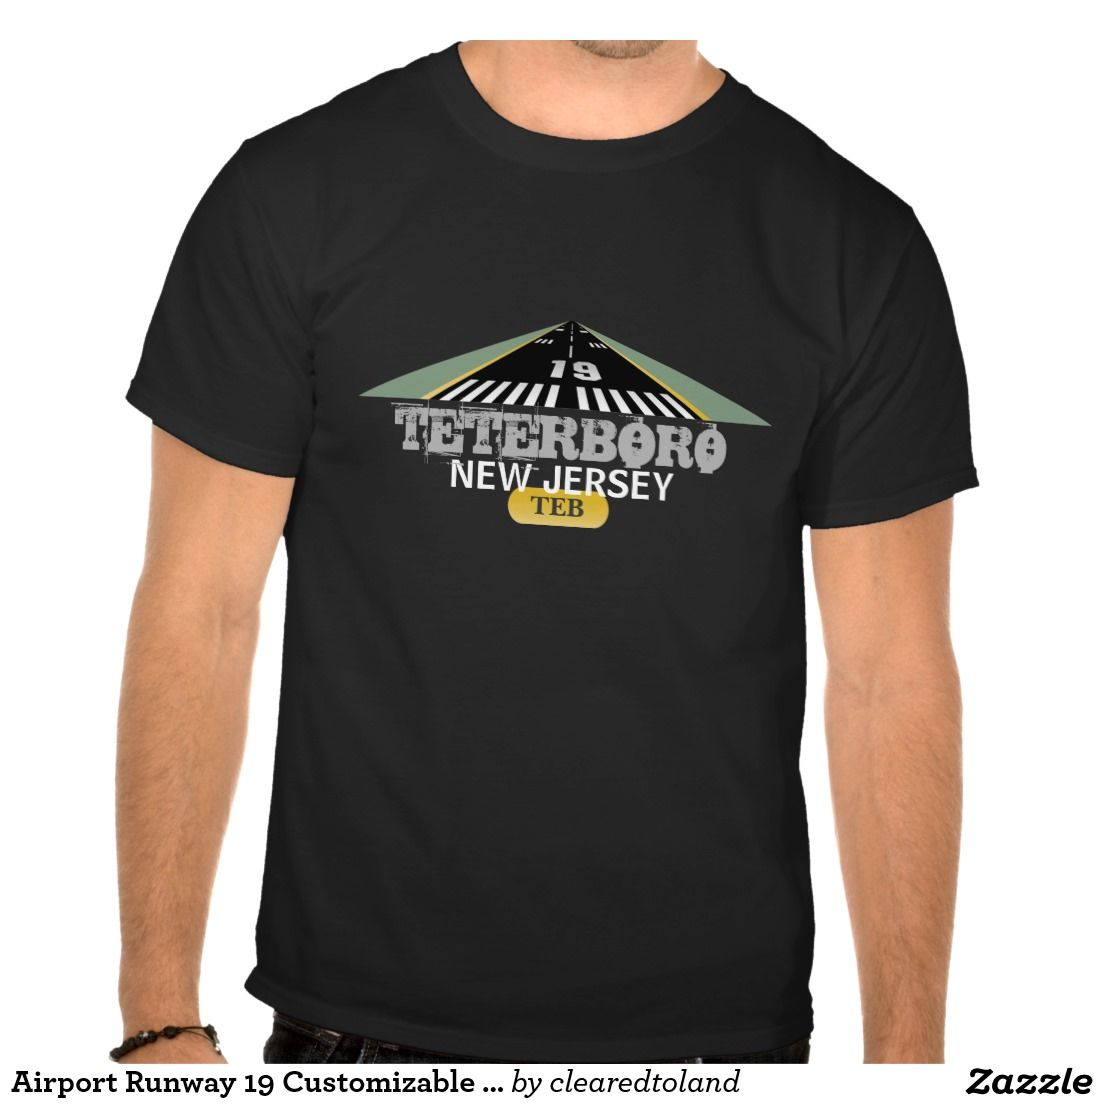 Design your own t shirt zazzle - Airport Runway 19 Customizable Shirt Graphic Airport Runway 19 Customize Shirts Gifts